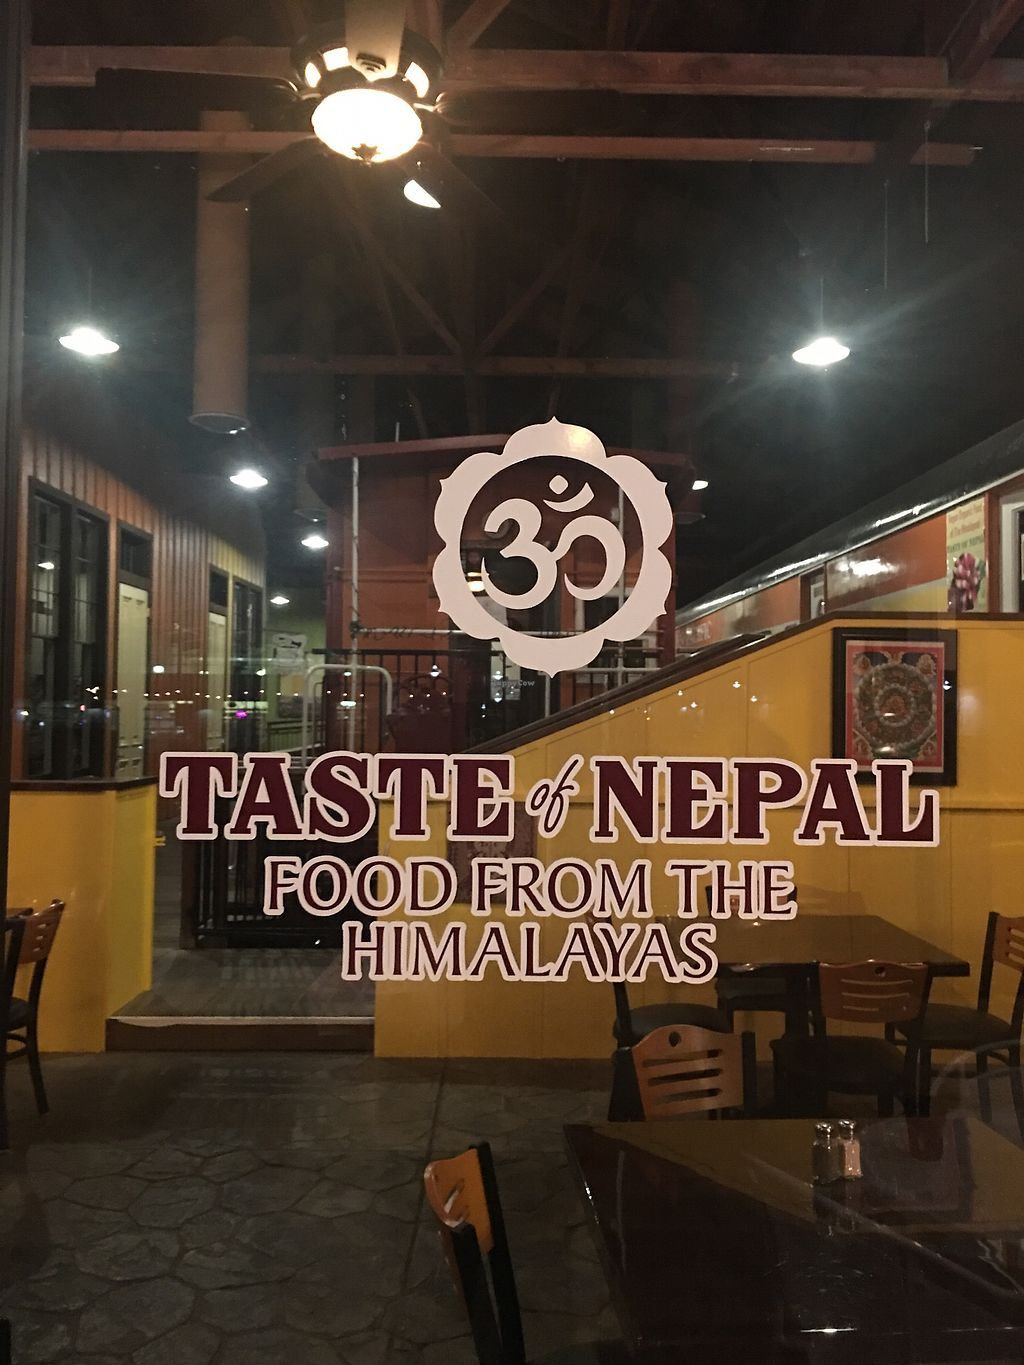 """Photo of Taste of Nepal  by <a href=""""/members/profile/americanwinter"""">americanwinter</a> <br/>Taste of Nepal  <br/> April 17, 2018  - <a href='/contact/abuse/image/106840/387089'>Report</a>"""